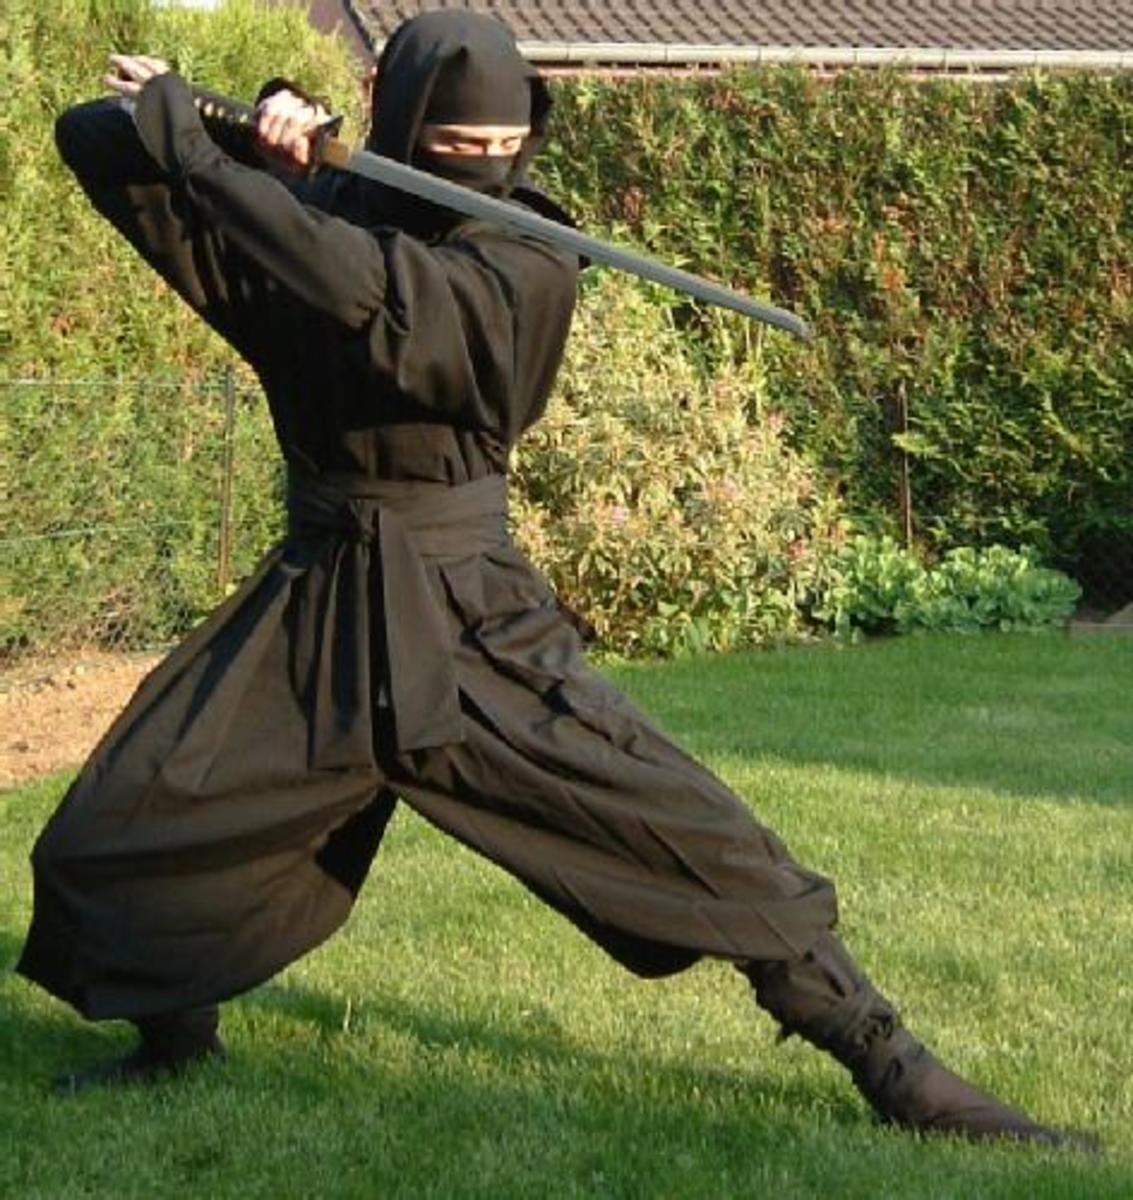 Ninjutsu, Japanese Martial Art of Ninja Espionage